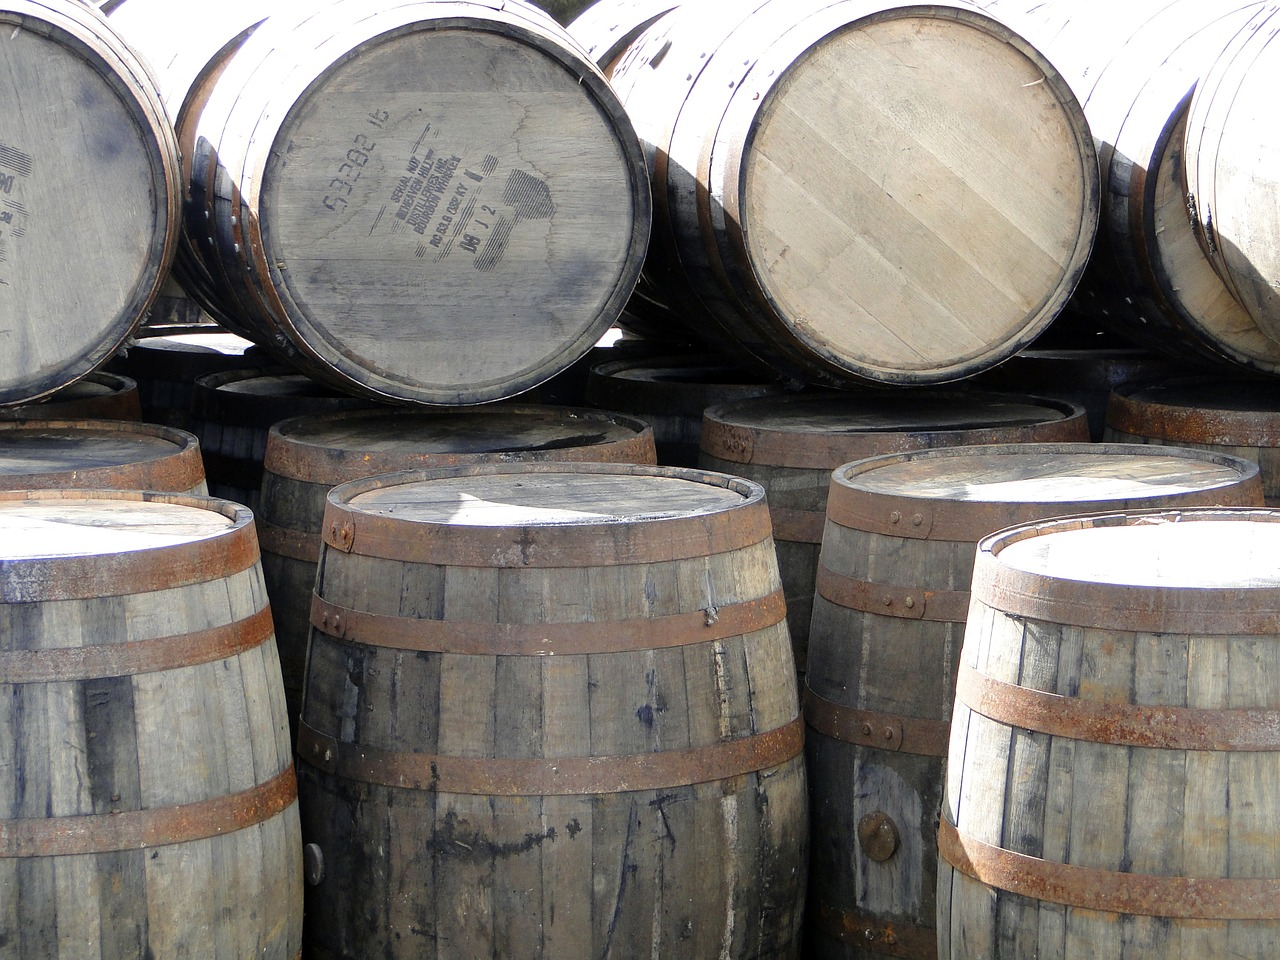 whiskey-barrels-667387_1280